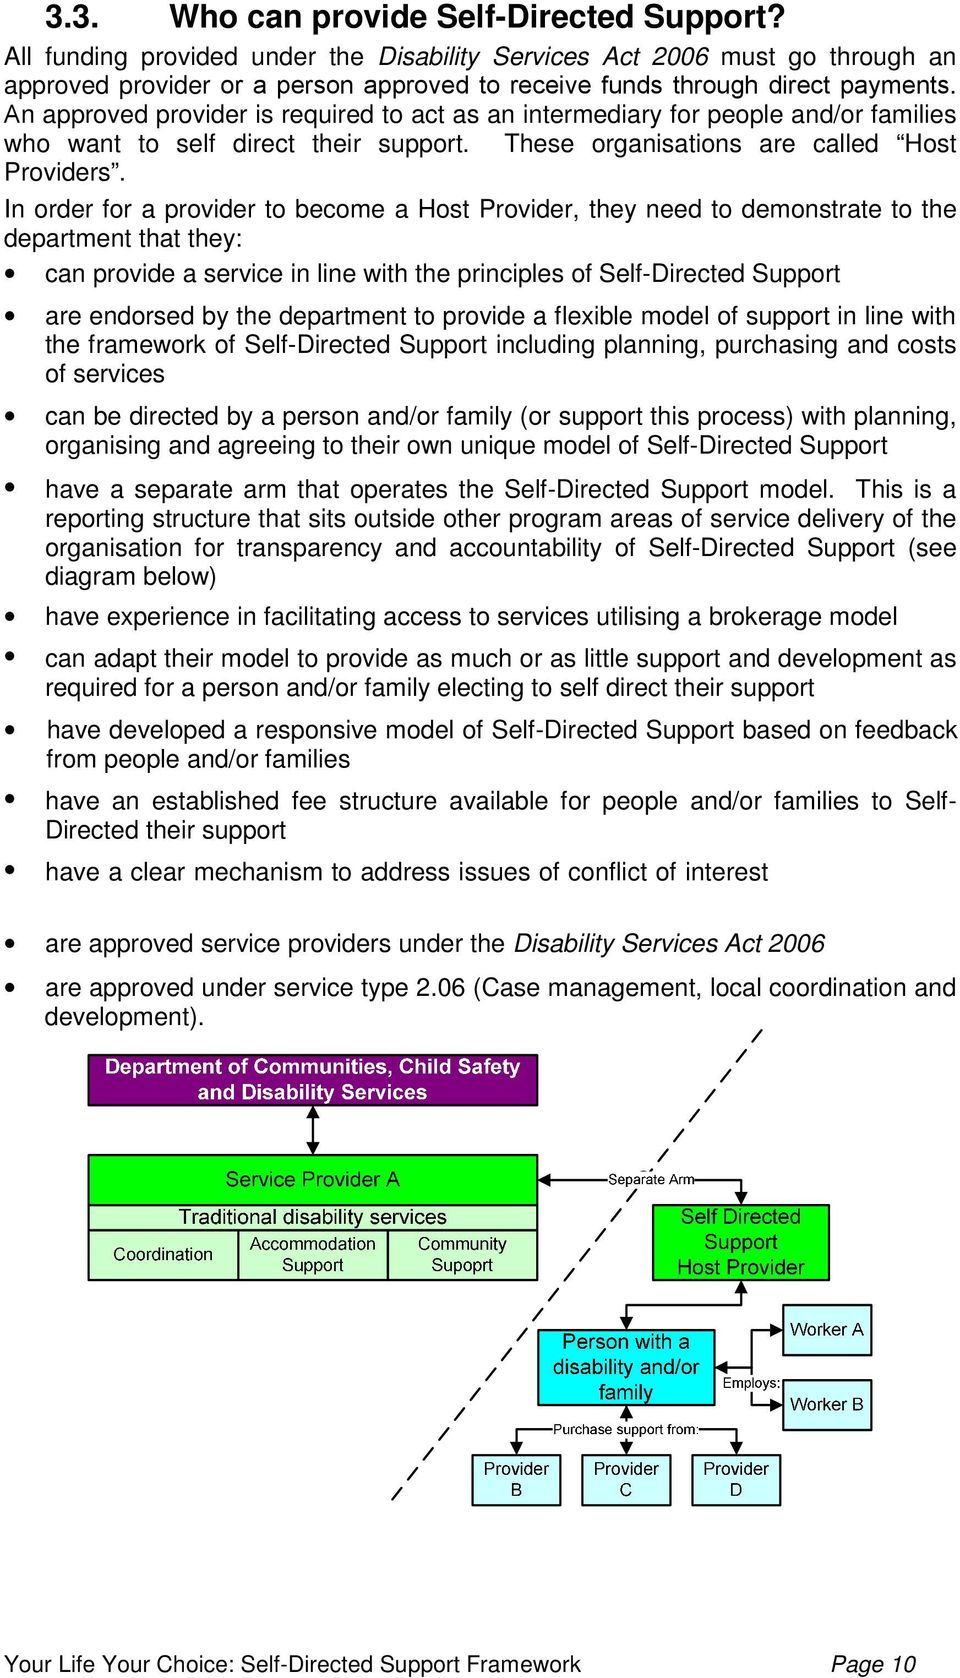 An approved provider is required to act as an intermediary for people and/or families who want to self direct their support. These organisations are called Host Providers.